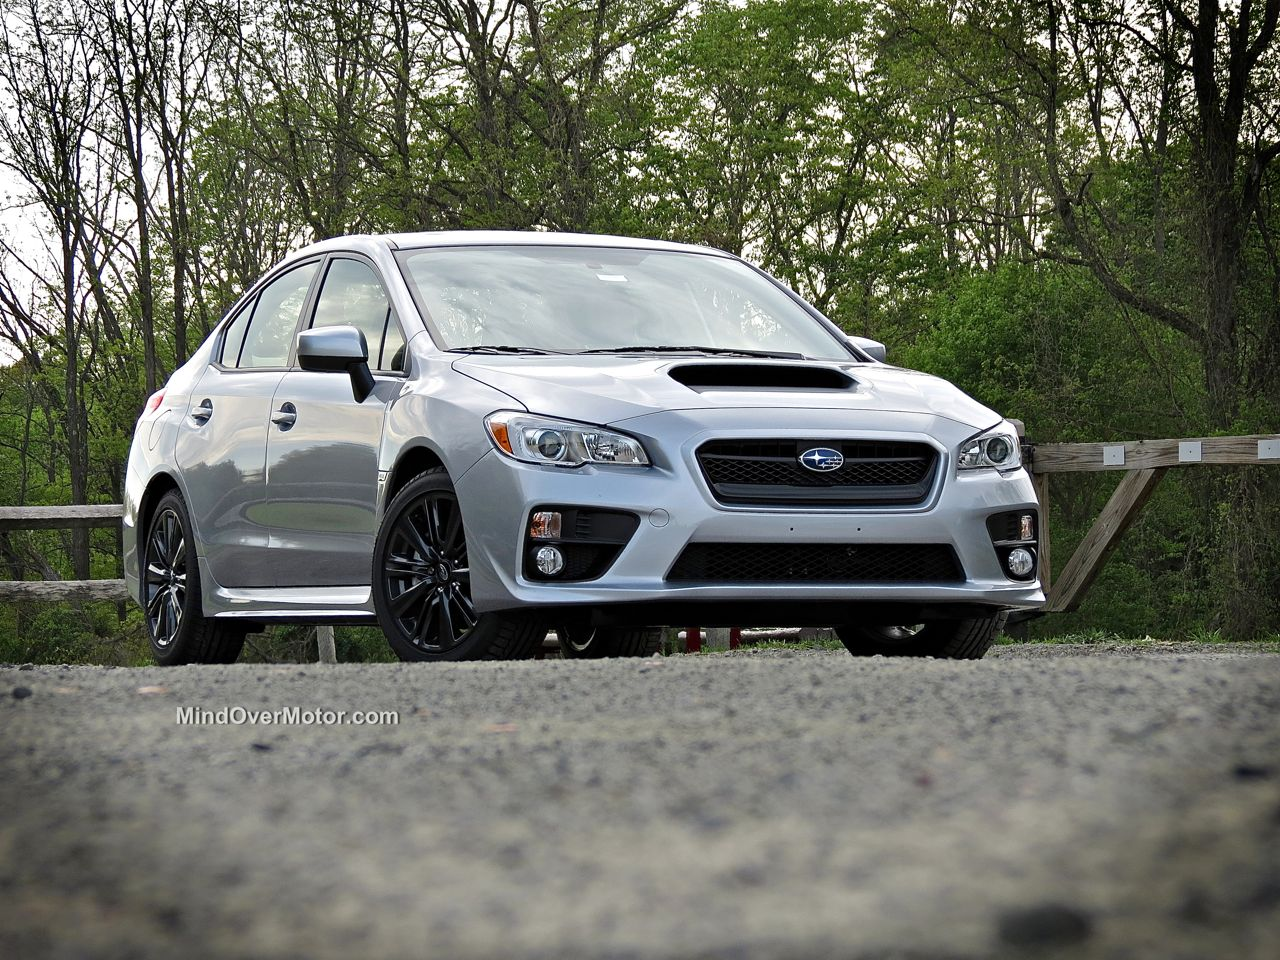 2015 Subaru WRX Review by Mind Over Motor